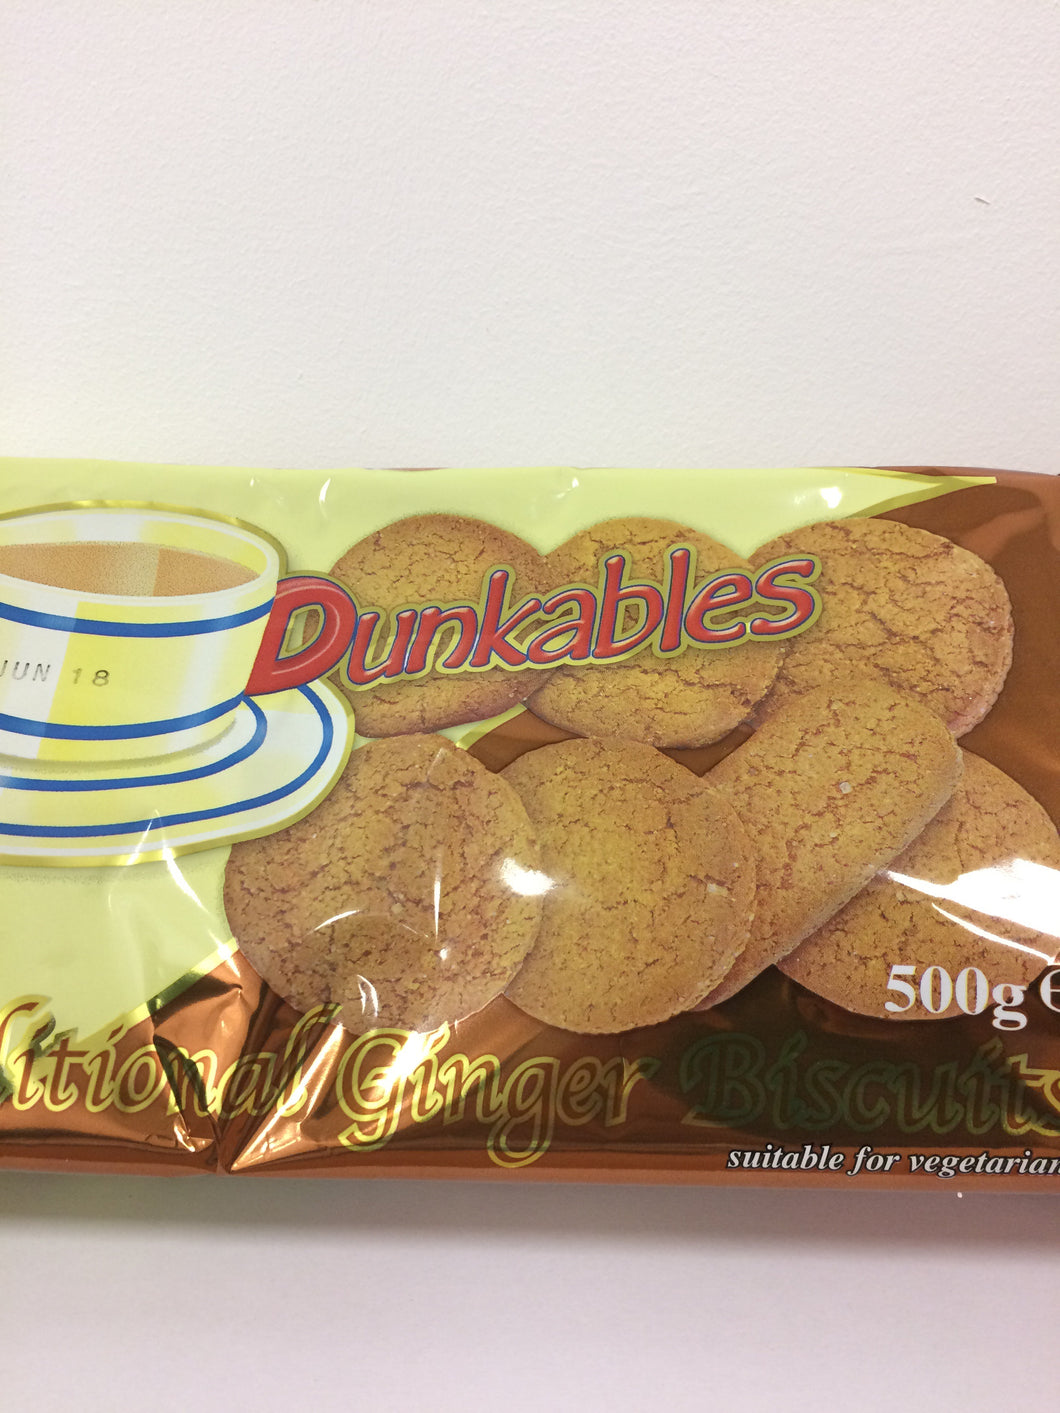 Dunkables Traditional Ginger Biscuits 500g